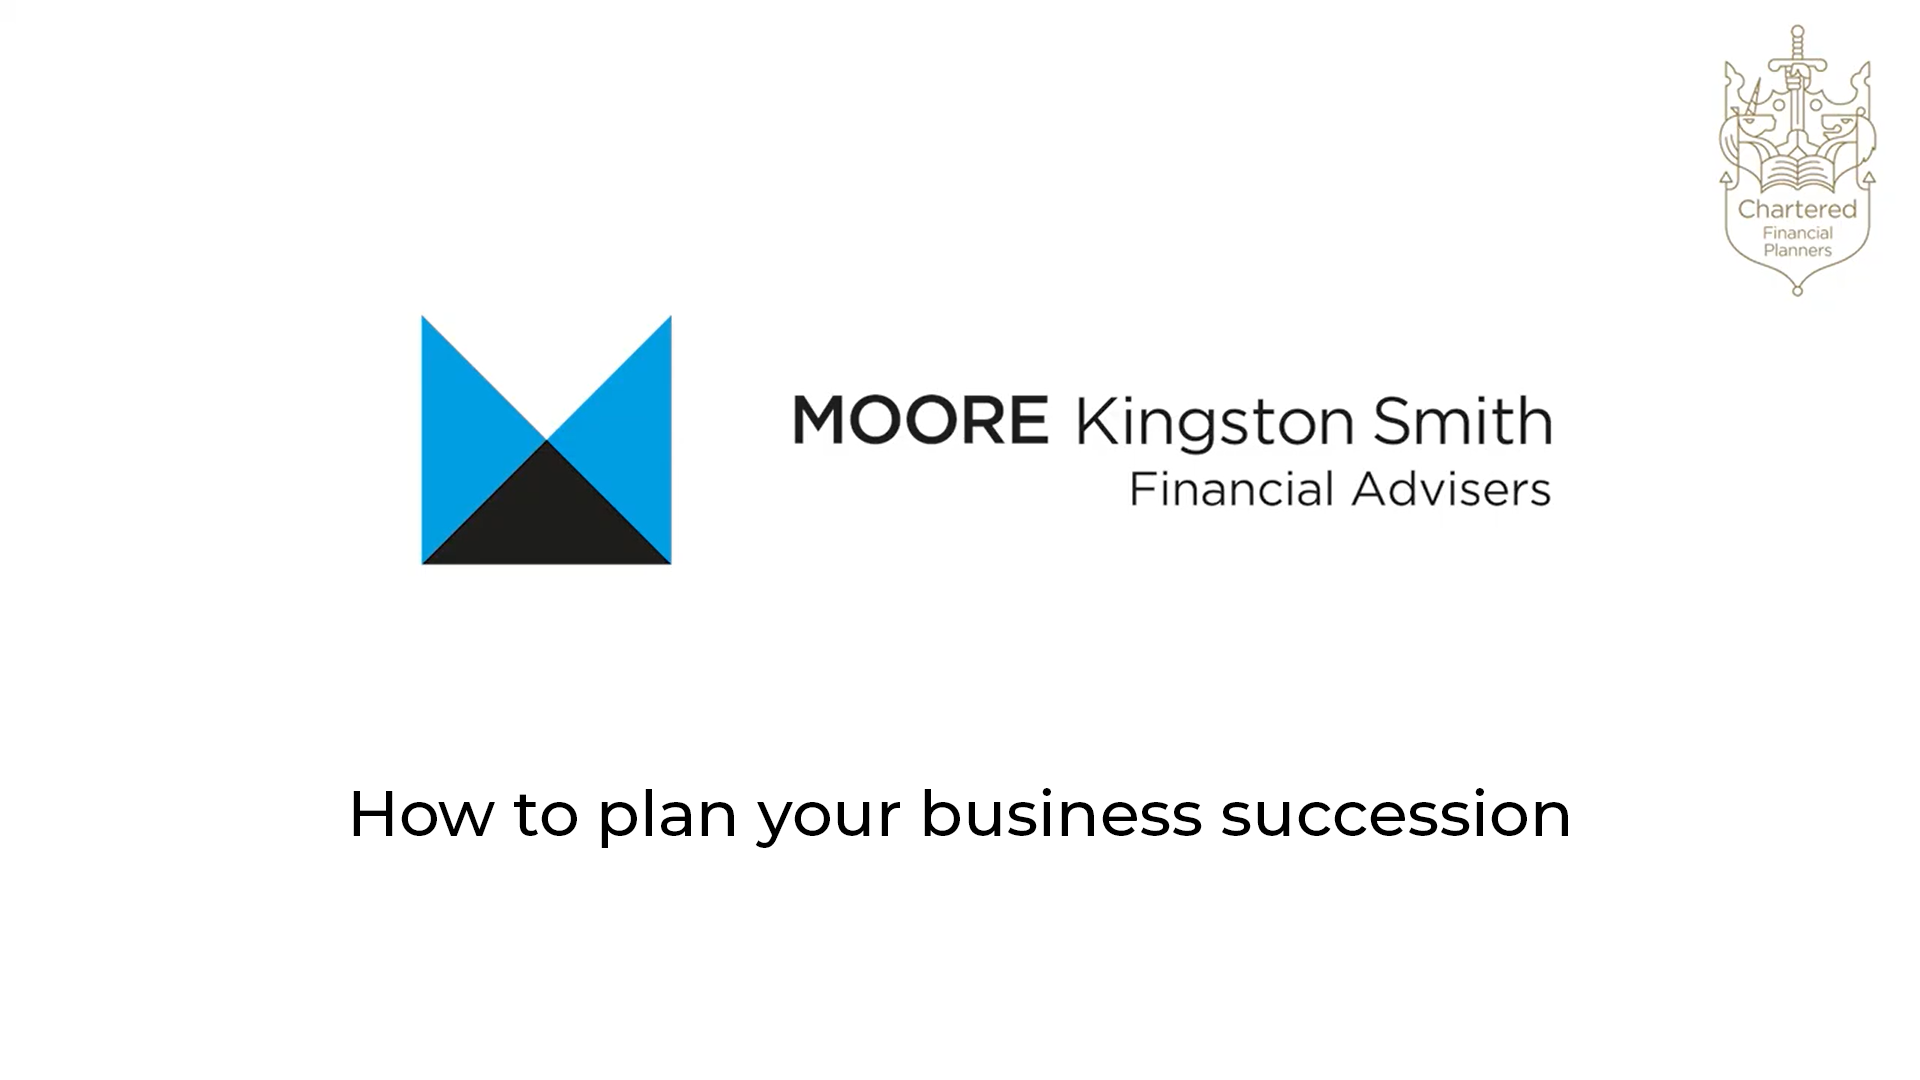 How to plan your business succession